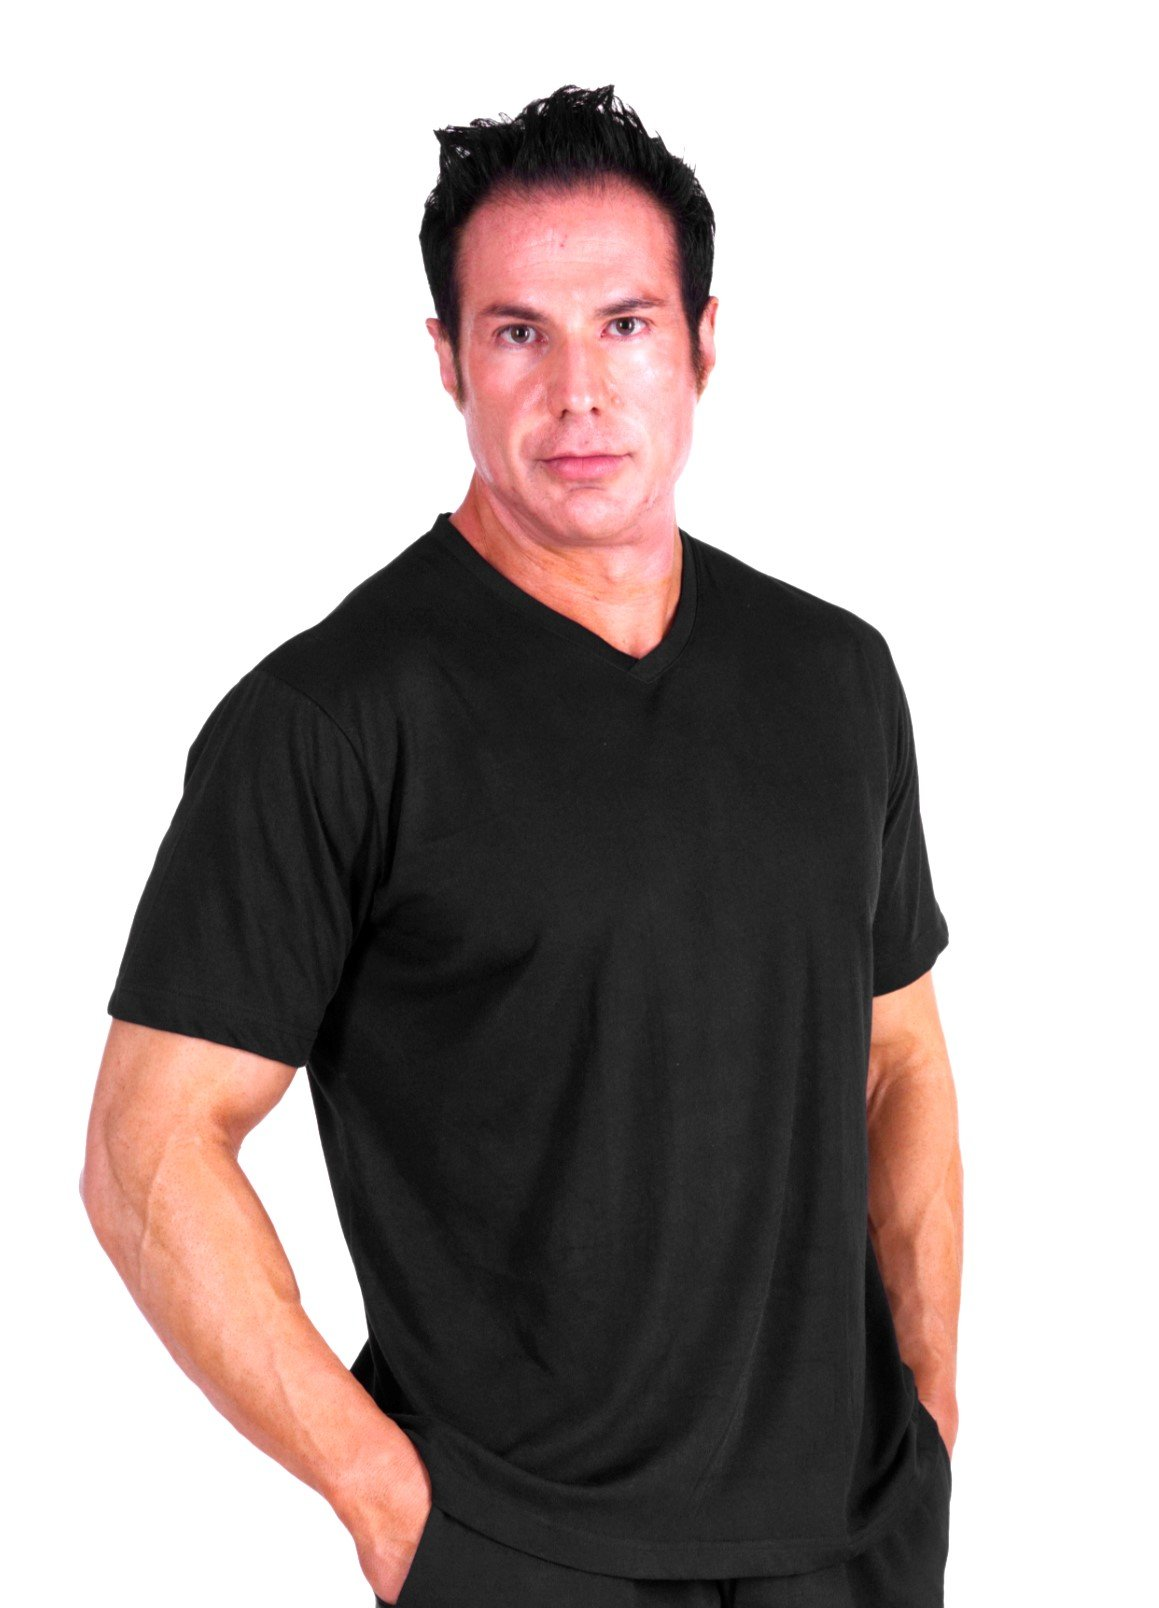 Cool-jams Wicking Men's V-Neck Pajama Top for Travel & Warm Nights (Large, Black)